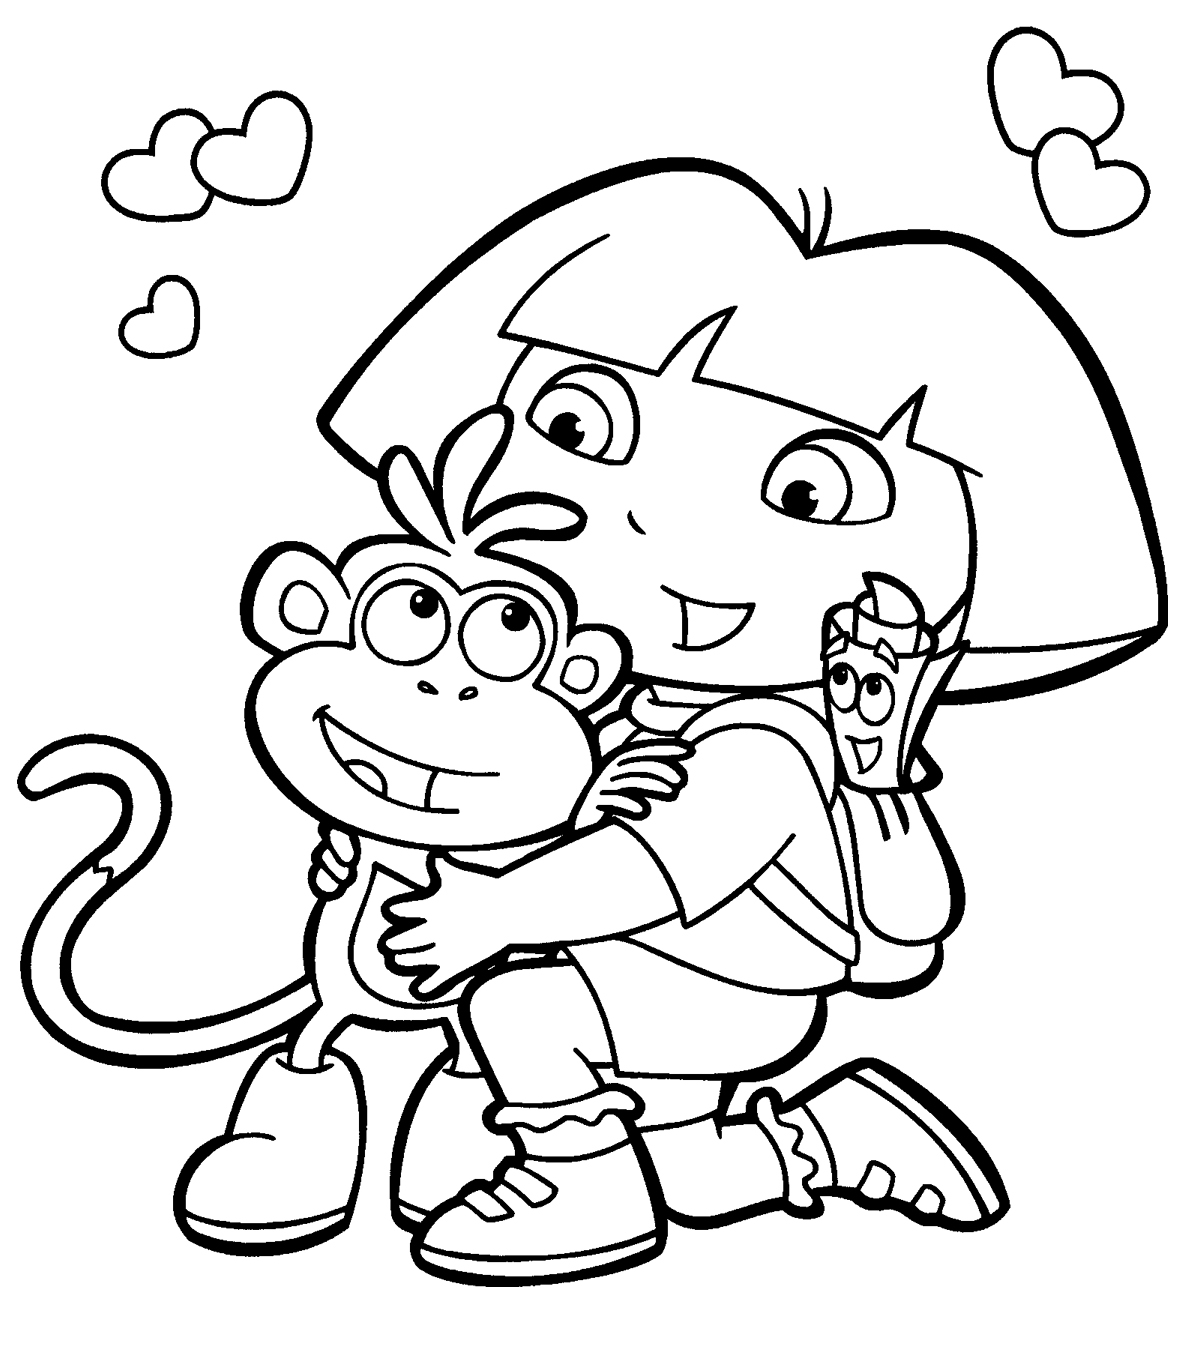 dora the explorer colouring pages print download dora coloring pages to learn new things the dora pages explorer colouring